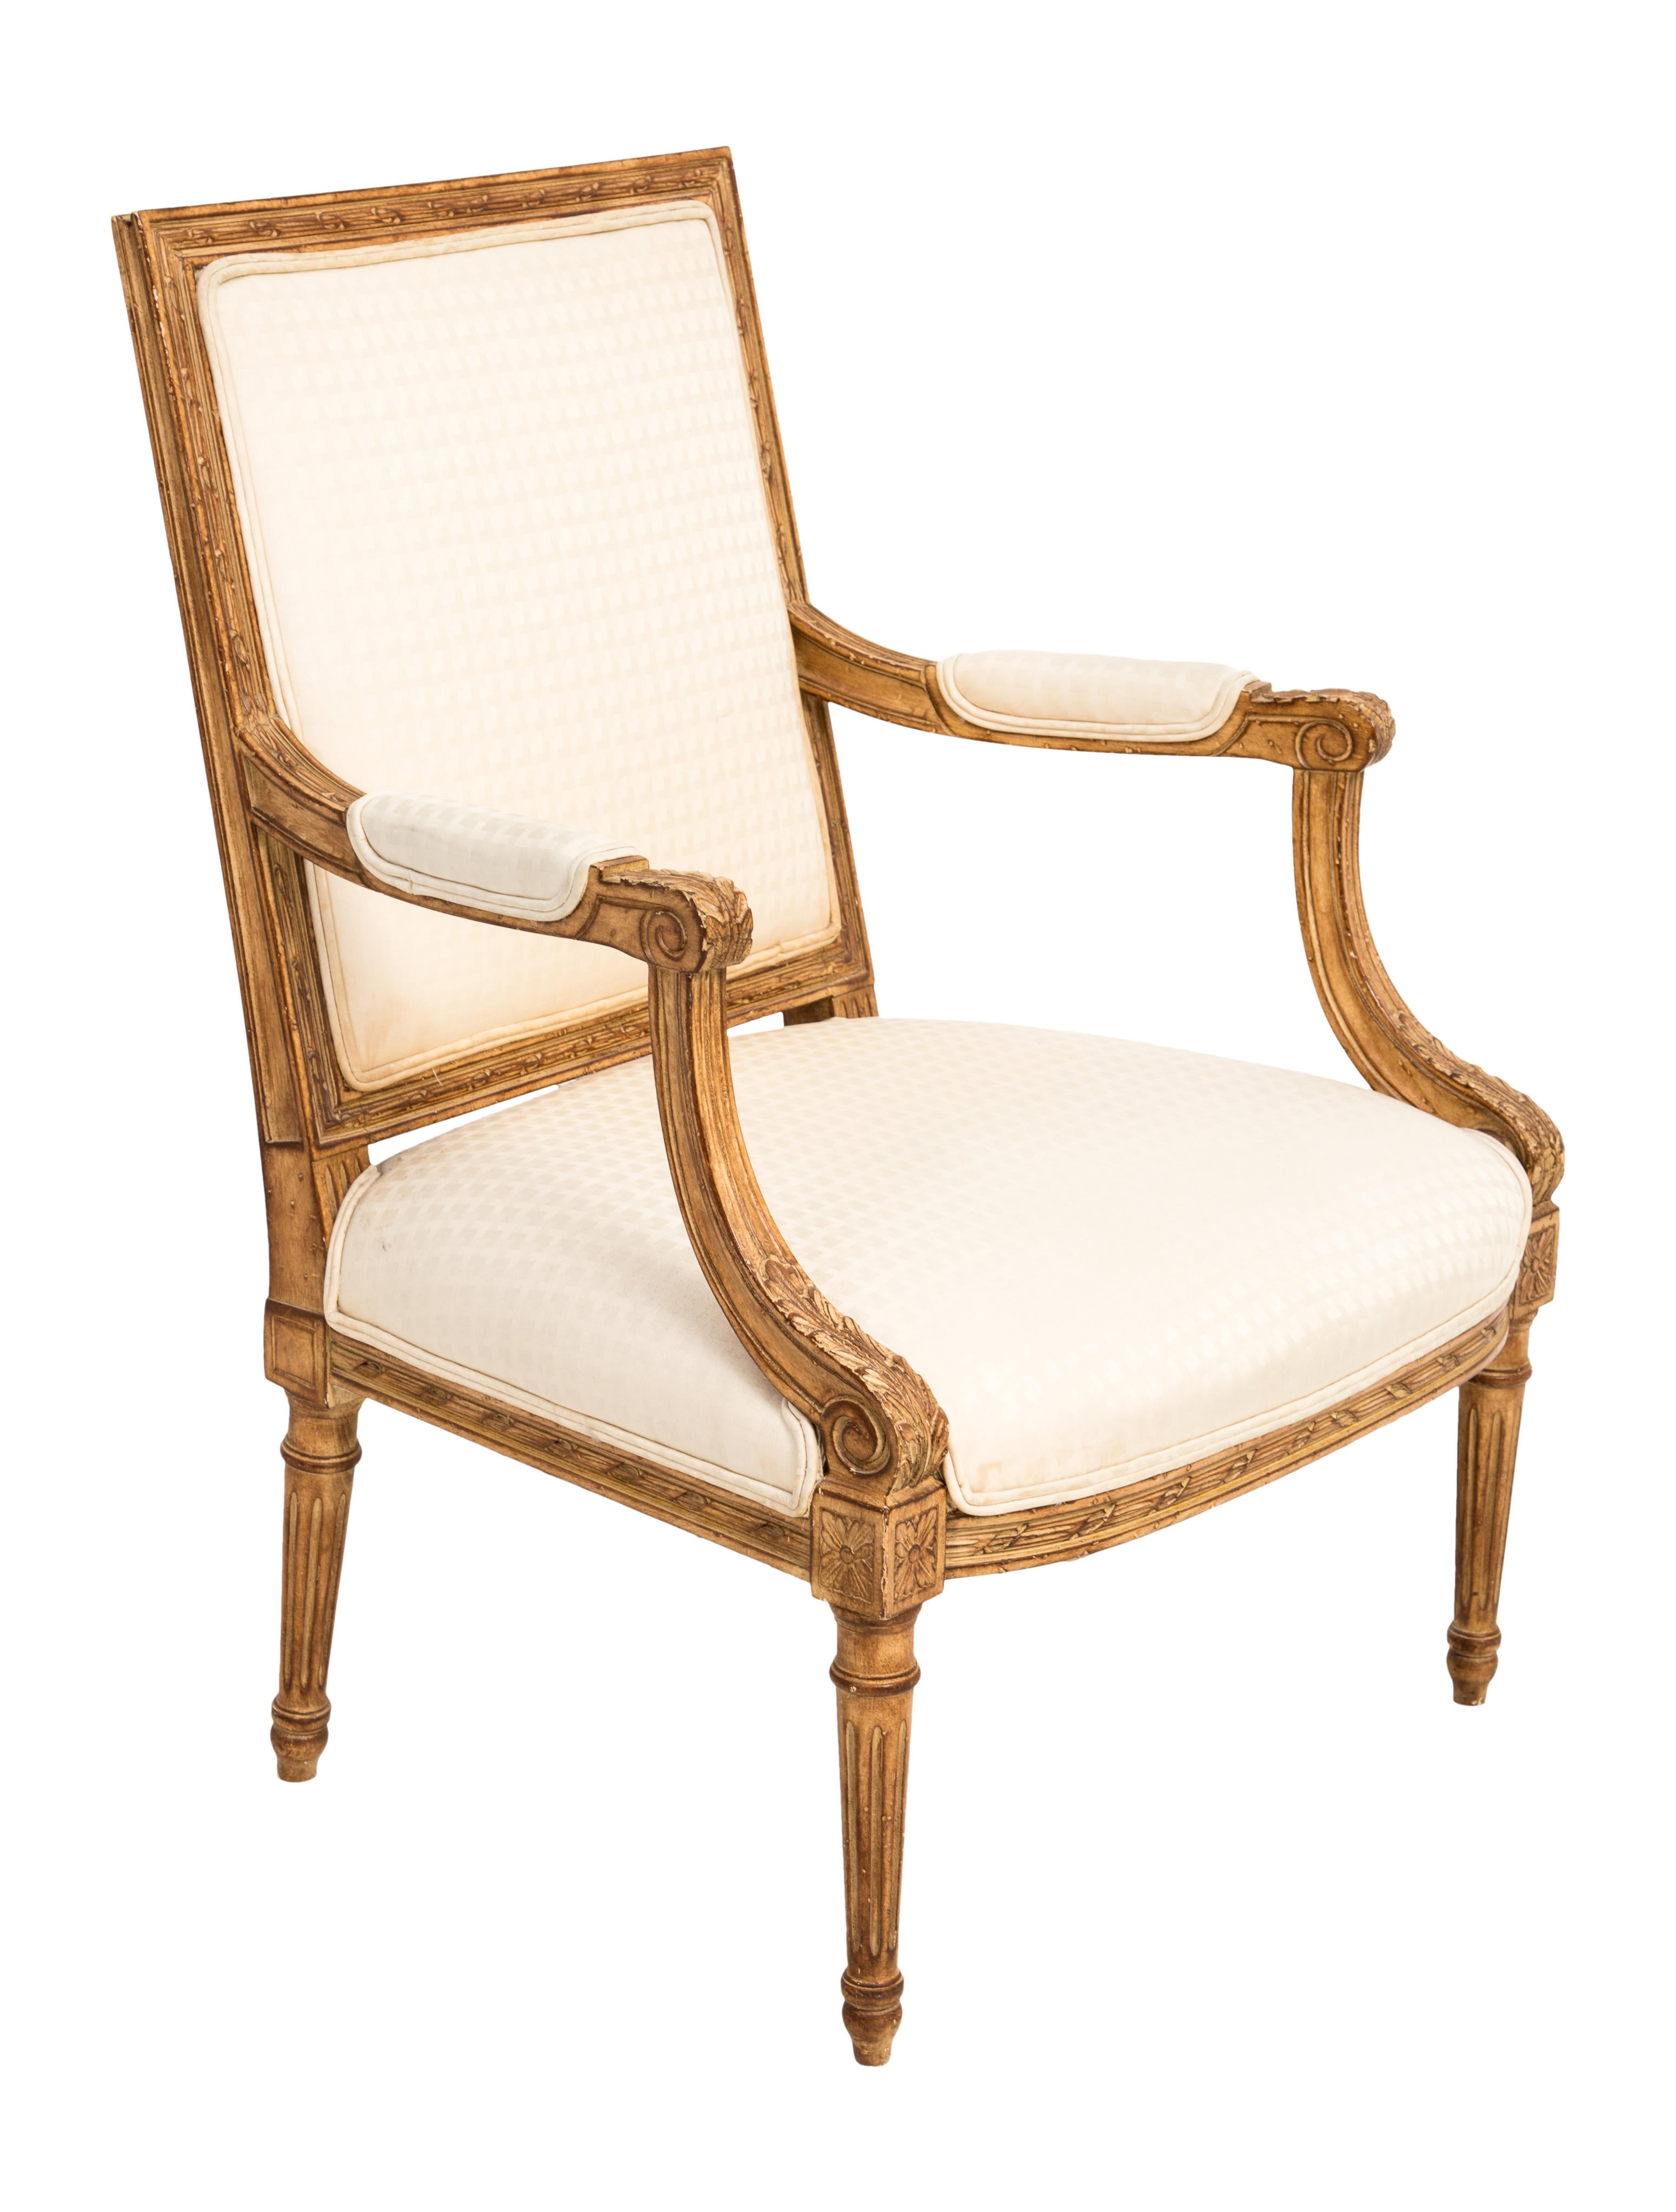 Louis xv style upholstered armchair furniture for Styles of upholstered chairs